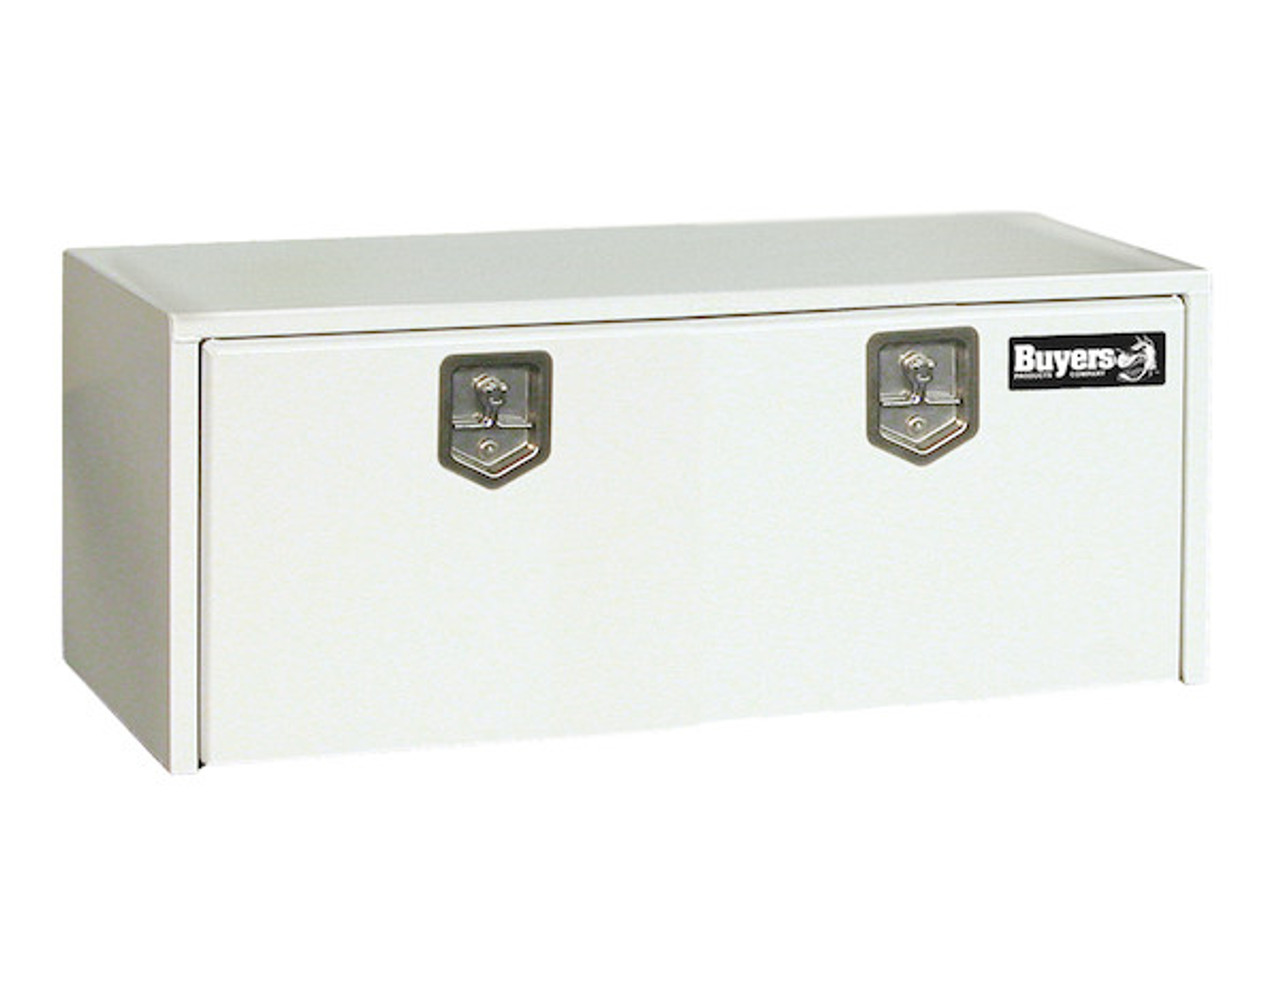 "1708410 BUYERS PRODUCTS WHITE STEEL UNDERBODY TRUCK BOX TOOLBOX 18""HX24""DX48""W"